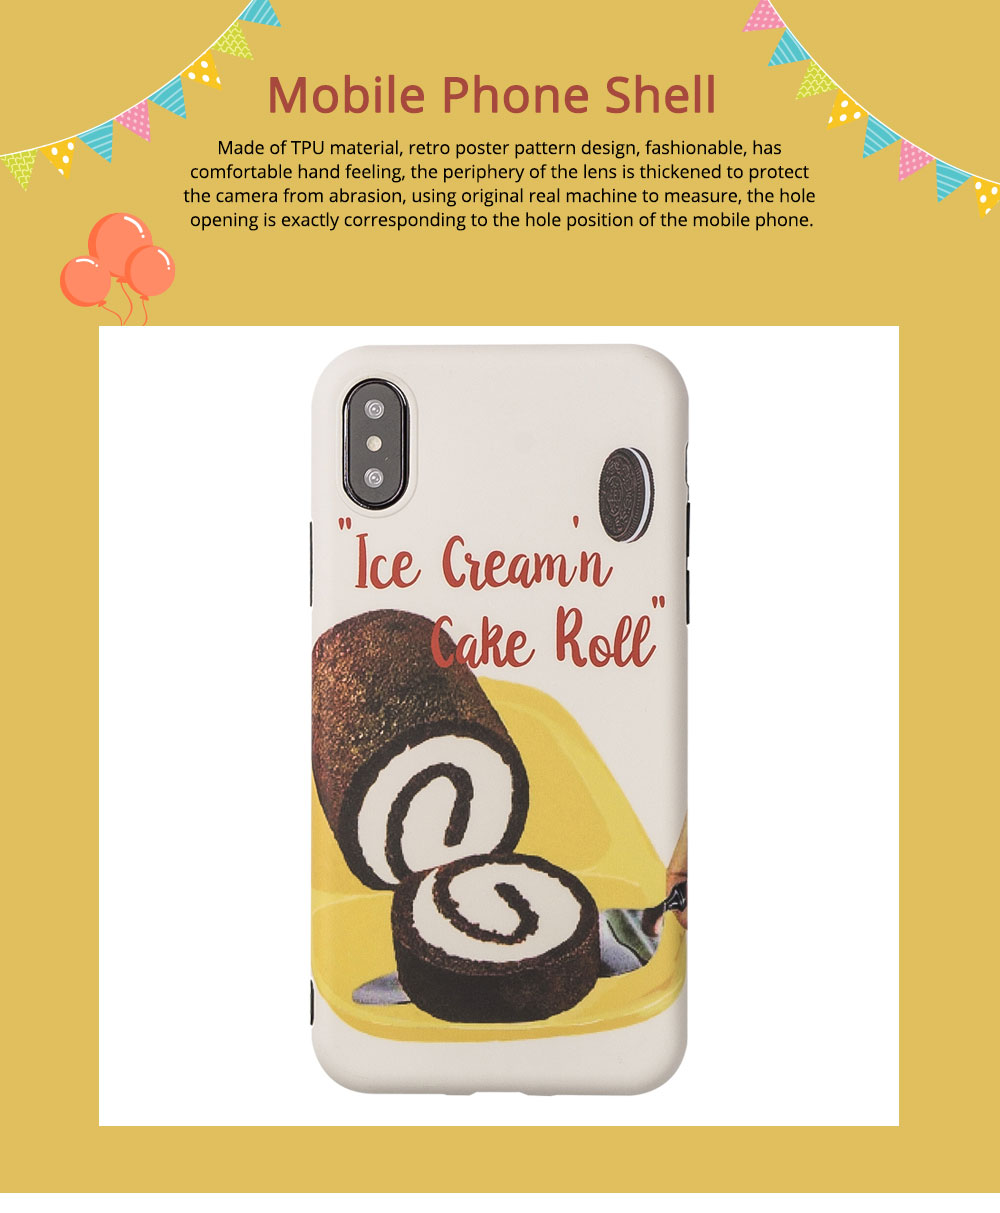 Original Retro Poster Ice Cream Cake Soft Phone Protective Cover for iPhone xs max/x/7 plus/6/8 Mobile Phone Shell 0